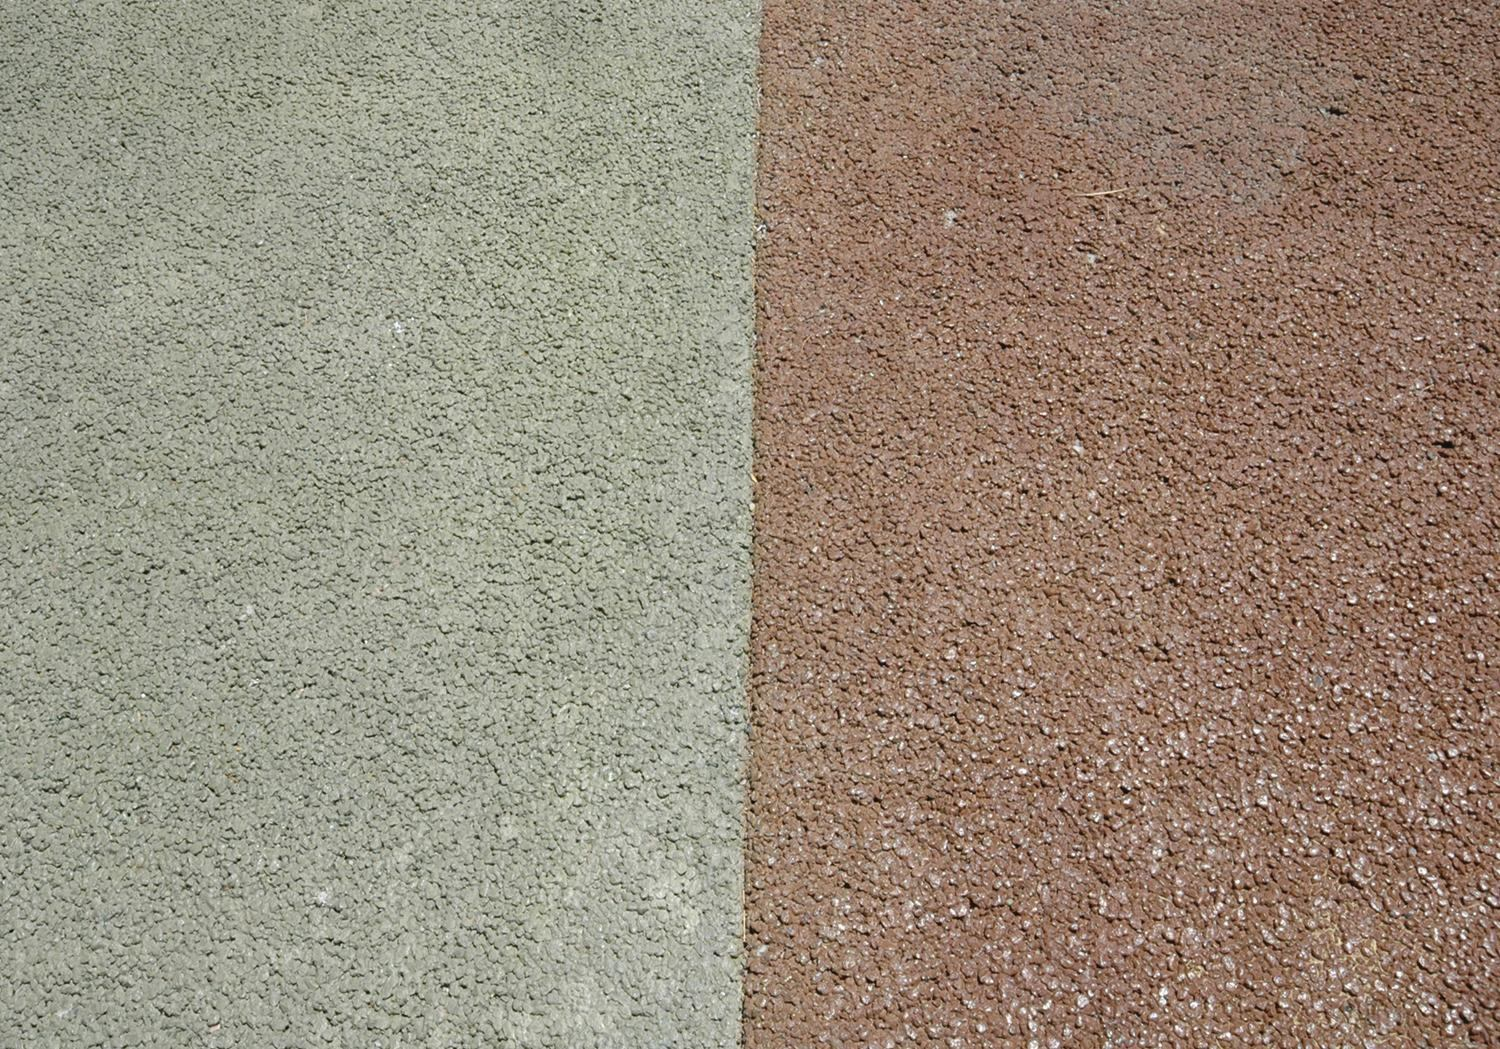 Colored pervious fits the bill concrete construction magazine colored pervious concrete fits the bill geenschuldenfo Image collections